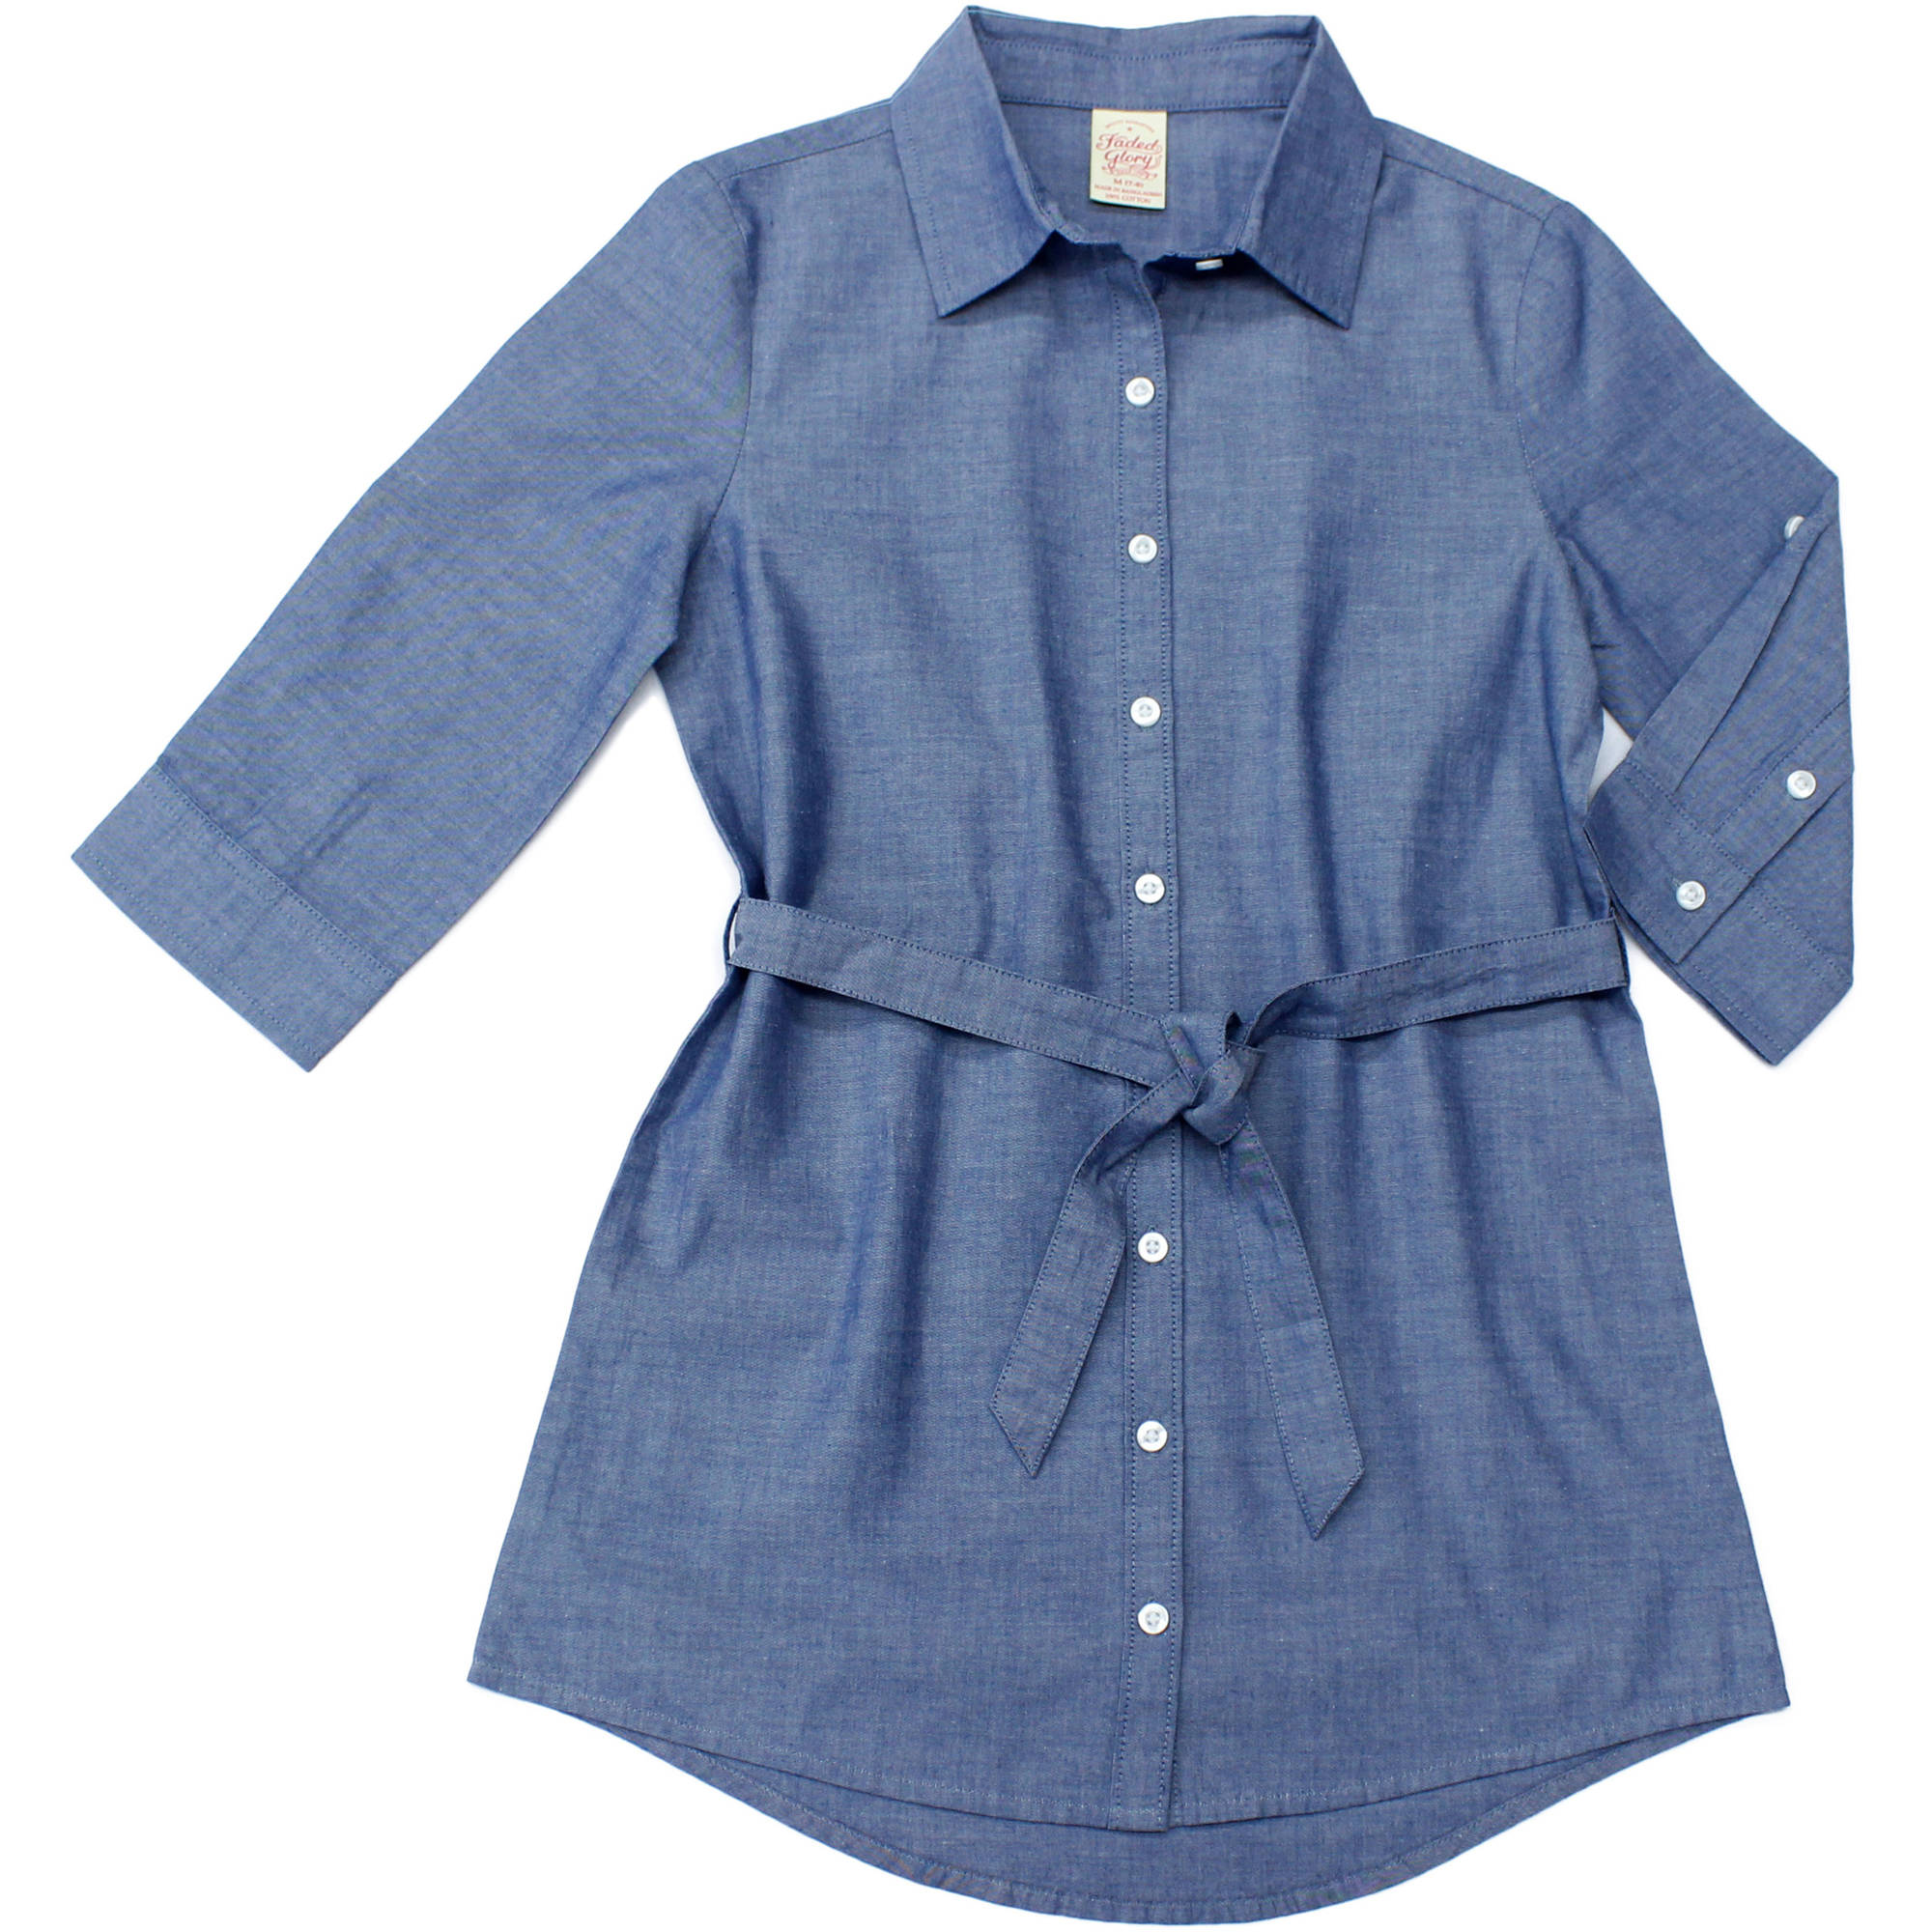 Faded Glory Girls' Chambray Tunic